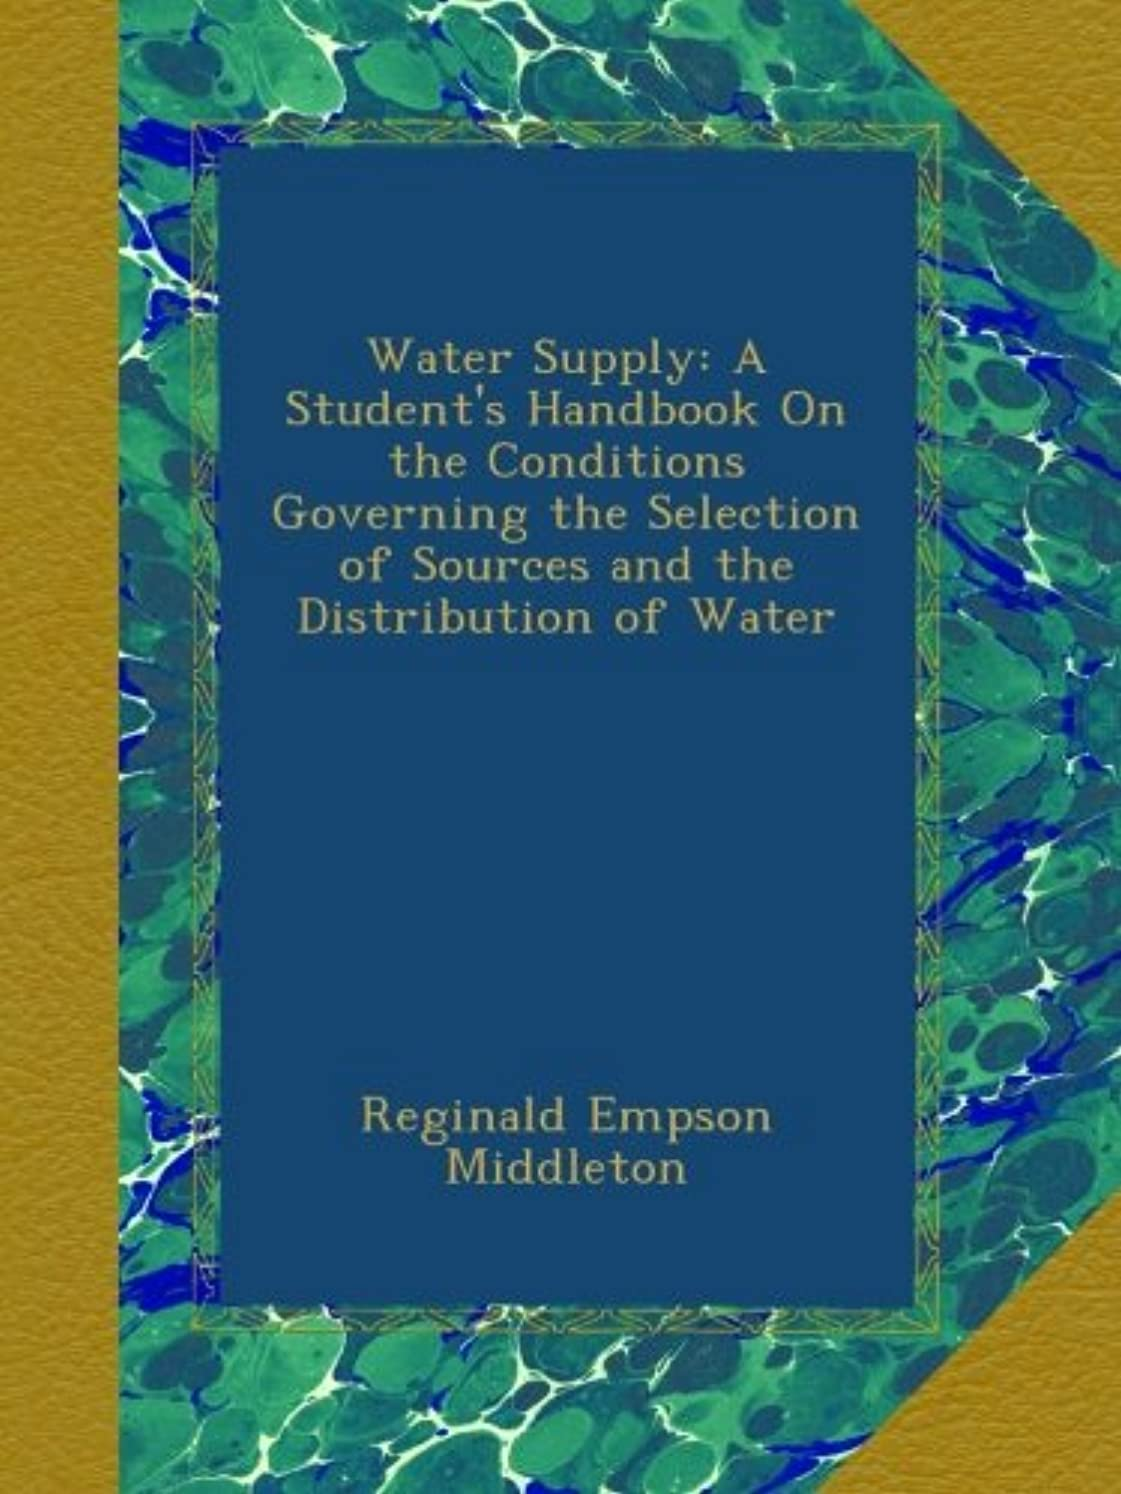 メンター逃れるウイルスWater Supply: A Student's Handbook On the Conditions Governing the Selection of Sources and the Distribution of Water